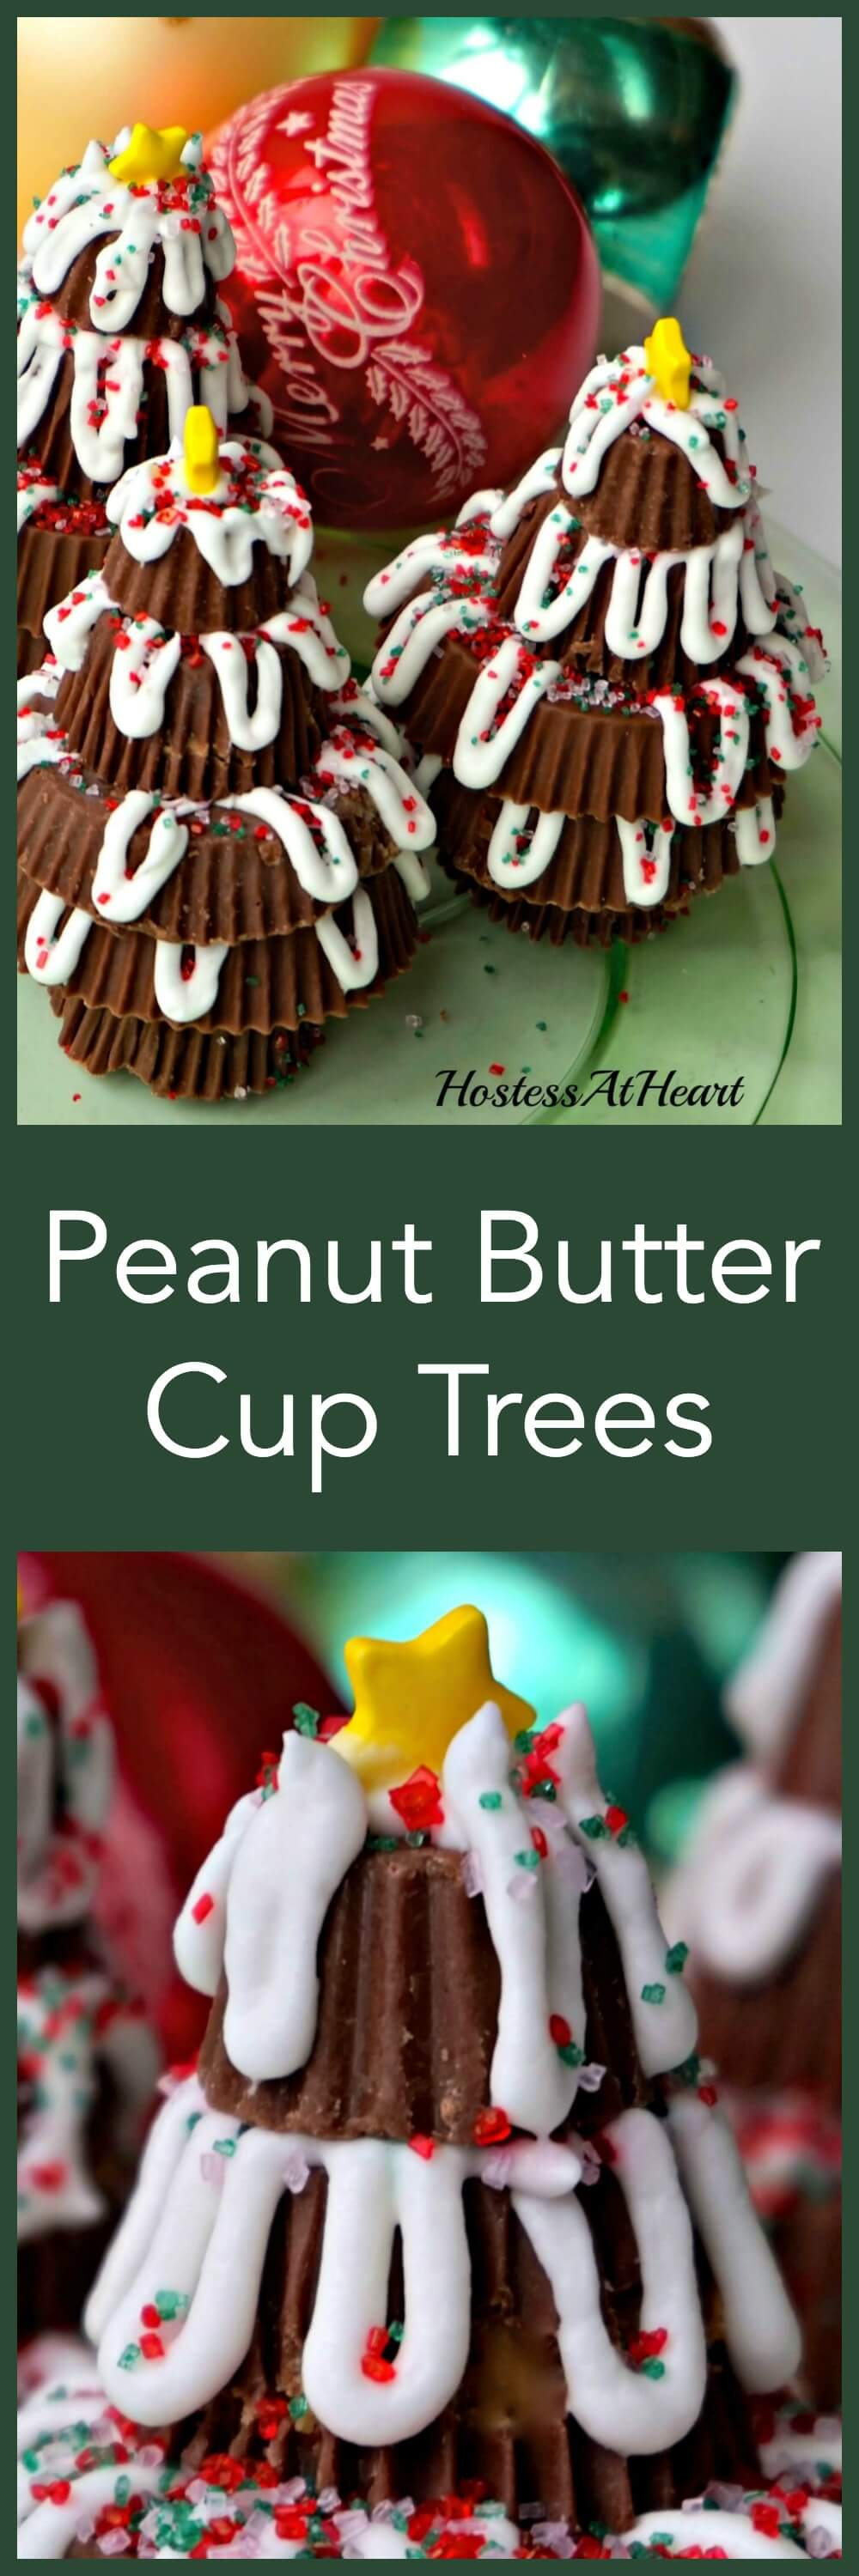 Peanut Butter Cup Trees make an adorable place setter on your table as well as a great after dinner treat. The whole family will have fun making their own. | HostessAtHeart.com